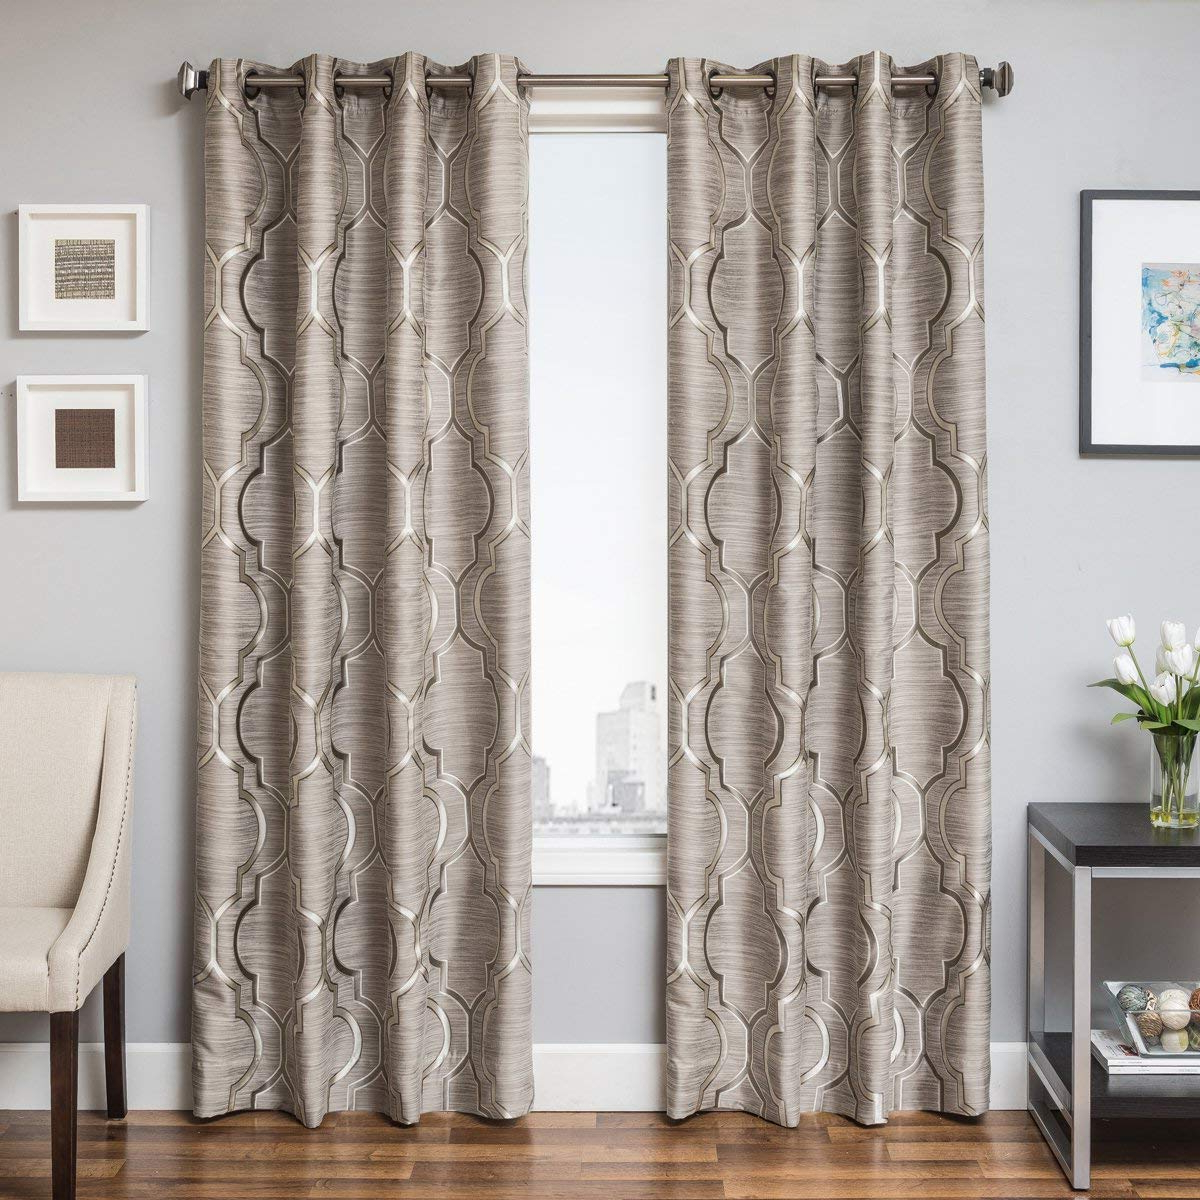 Amazon: Softline Trenton Grommet Top Curtain Panel Grey Throughout Most Up To Date Softline Trenton Grommet Top Curtain Panels (View 3 of 20)